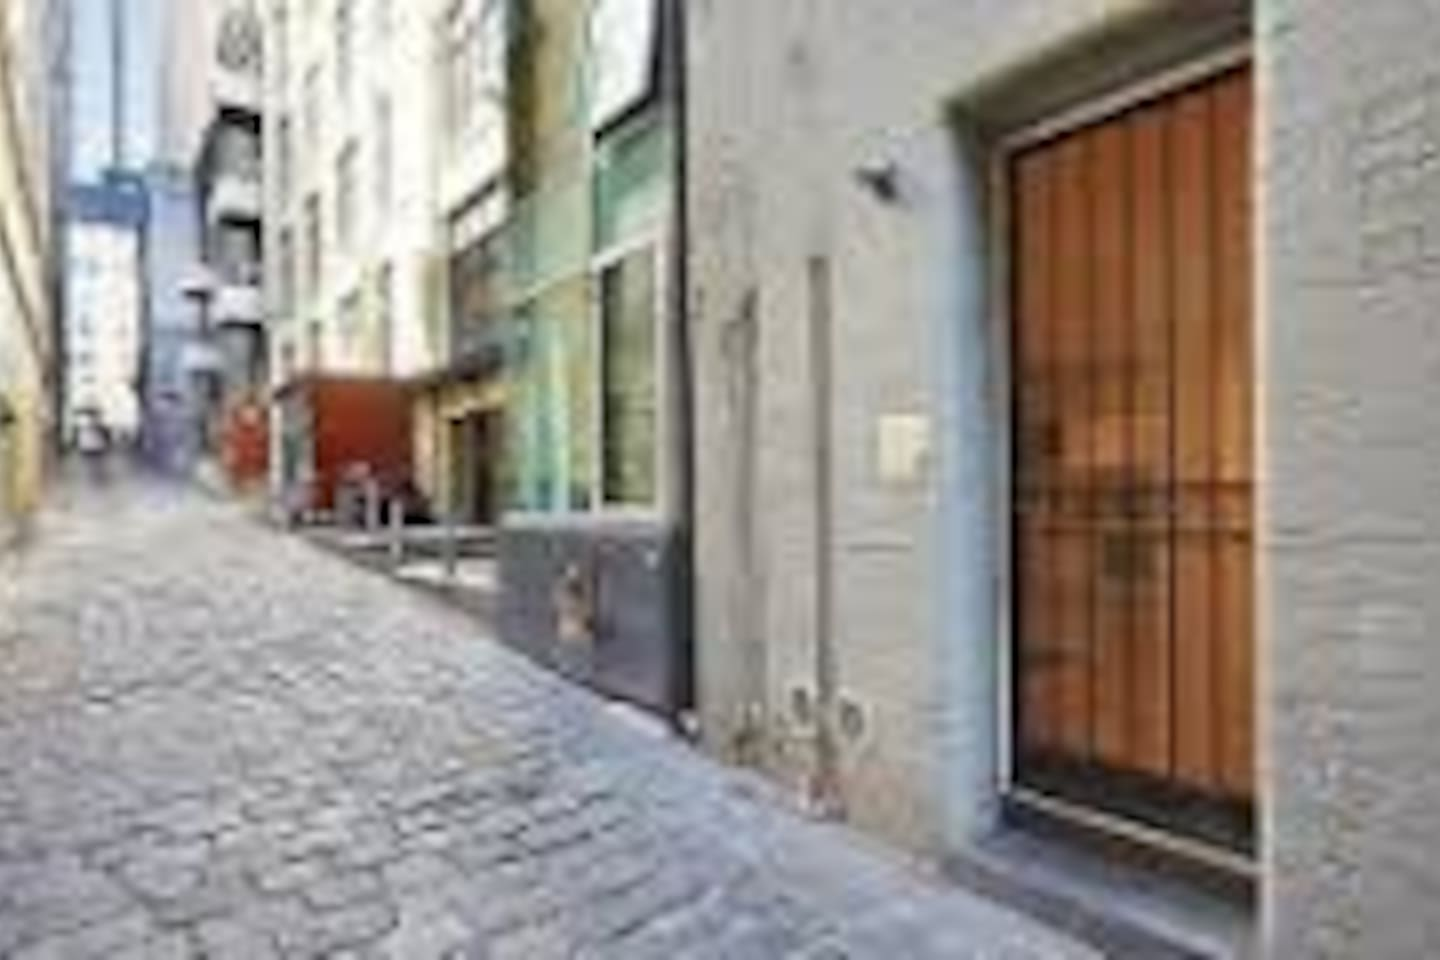 Own private entrance directly from Oliver Lane